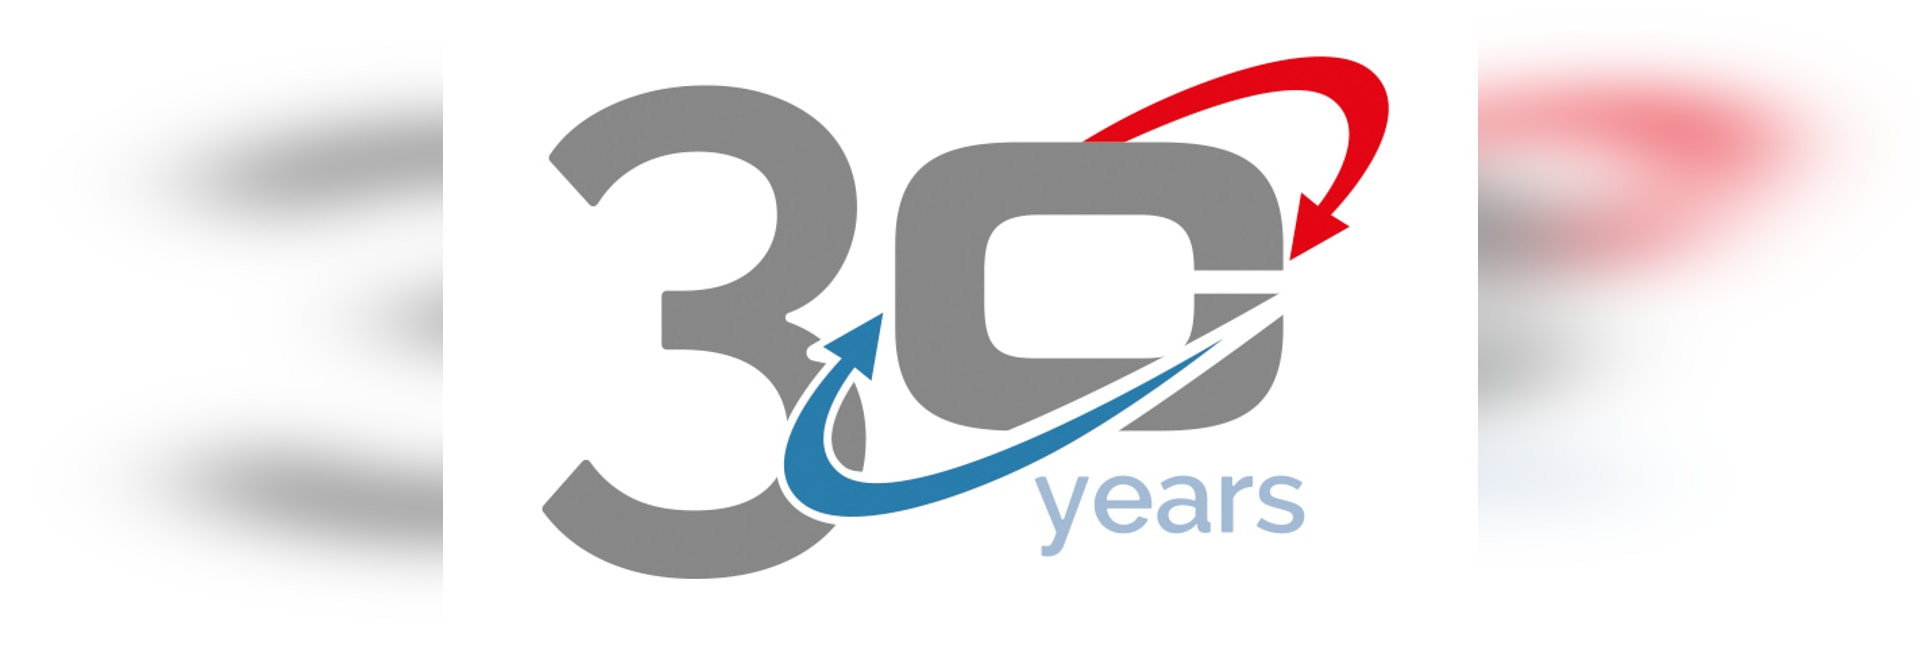 Cosmotec 30 years